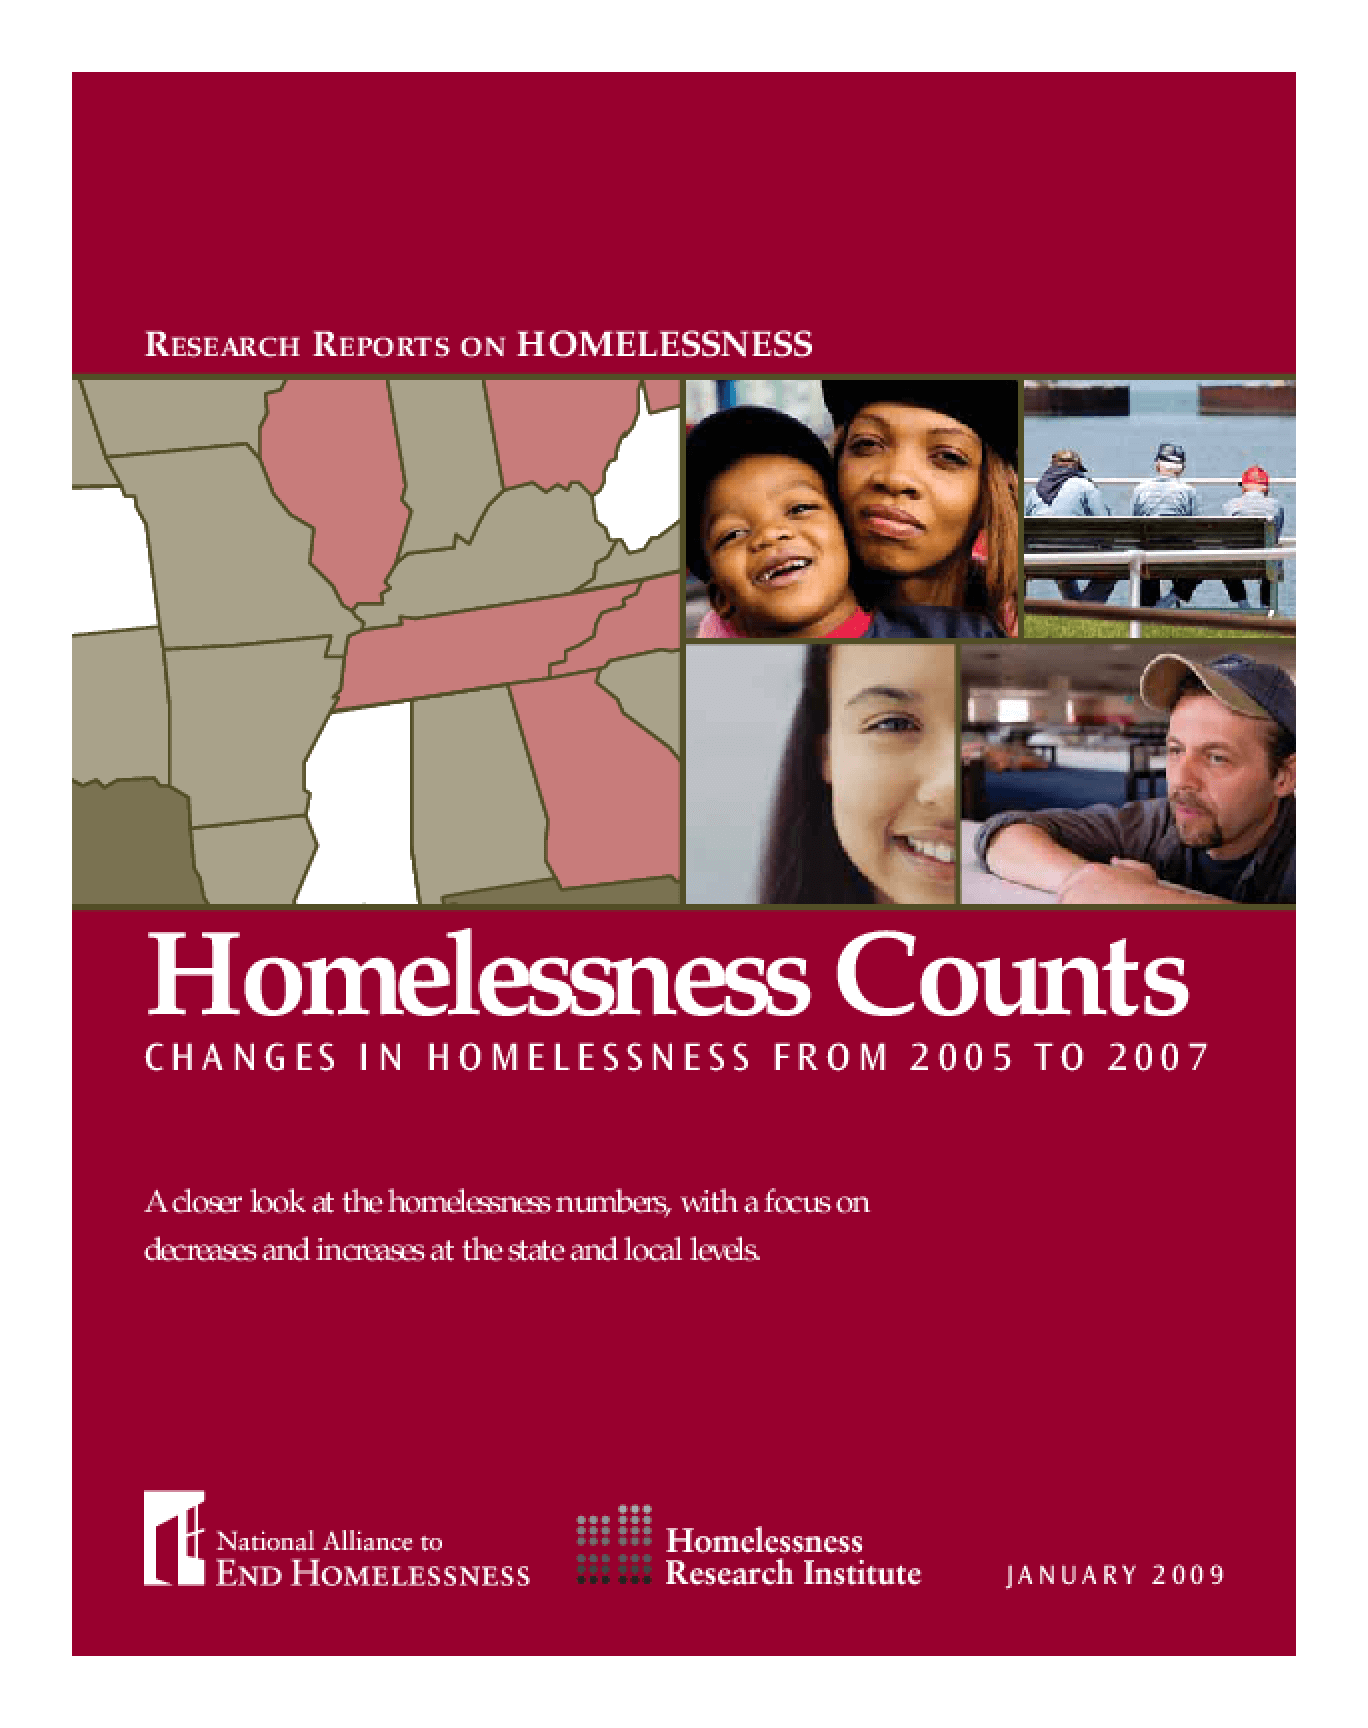 Homelessness Counts: Changes in Homelessness from 2005 to 2007